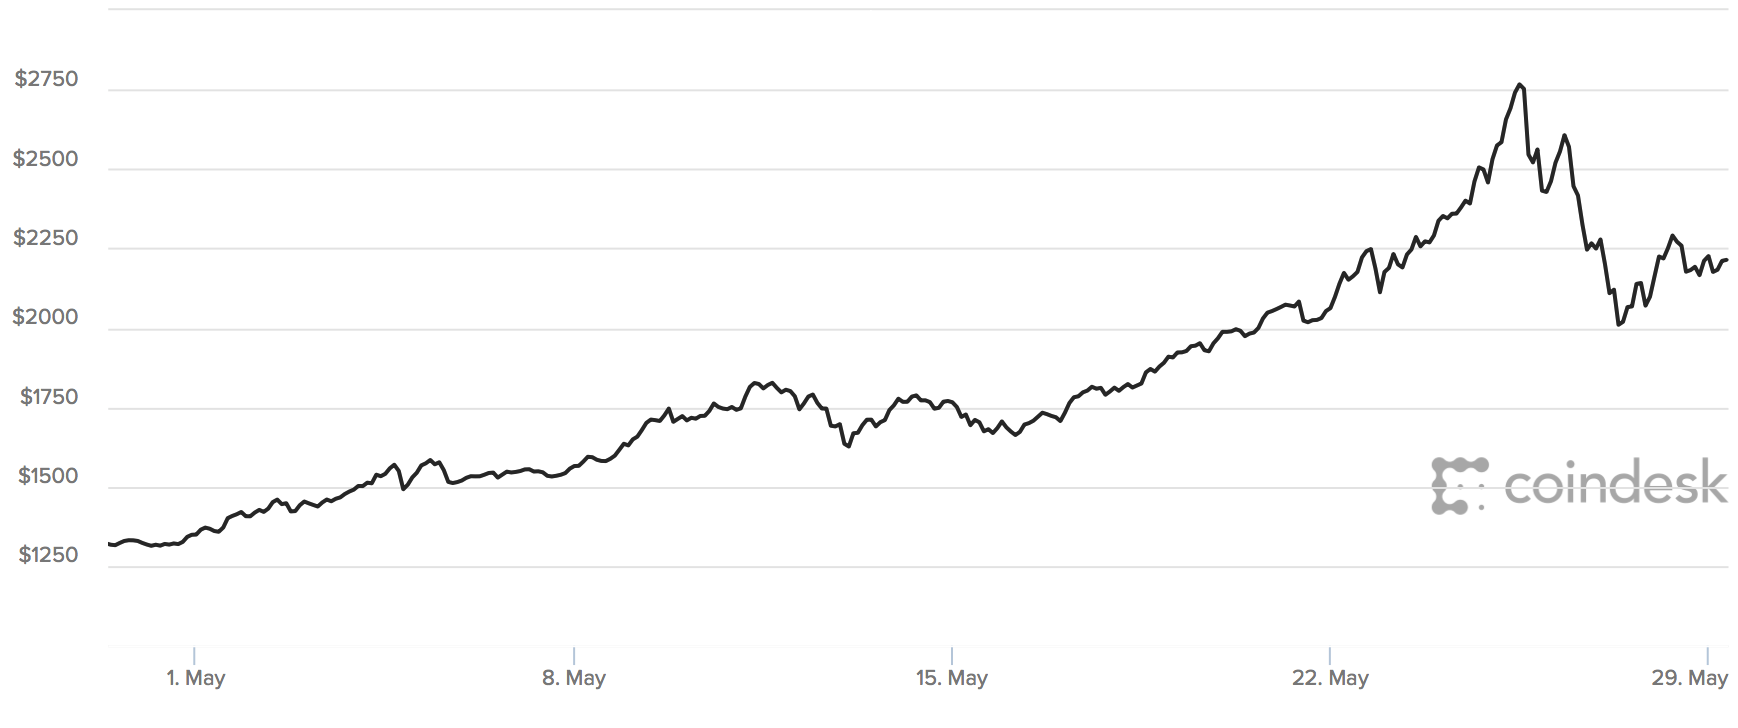 Why The Spike In Bitcoin Price